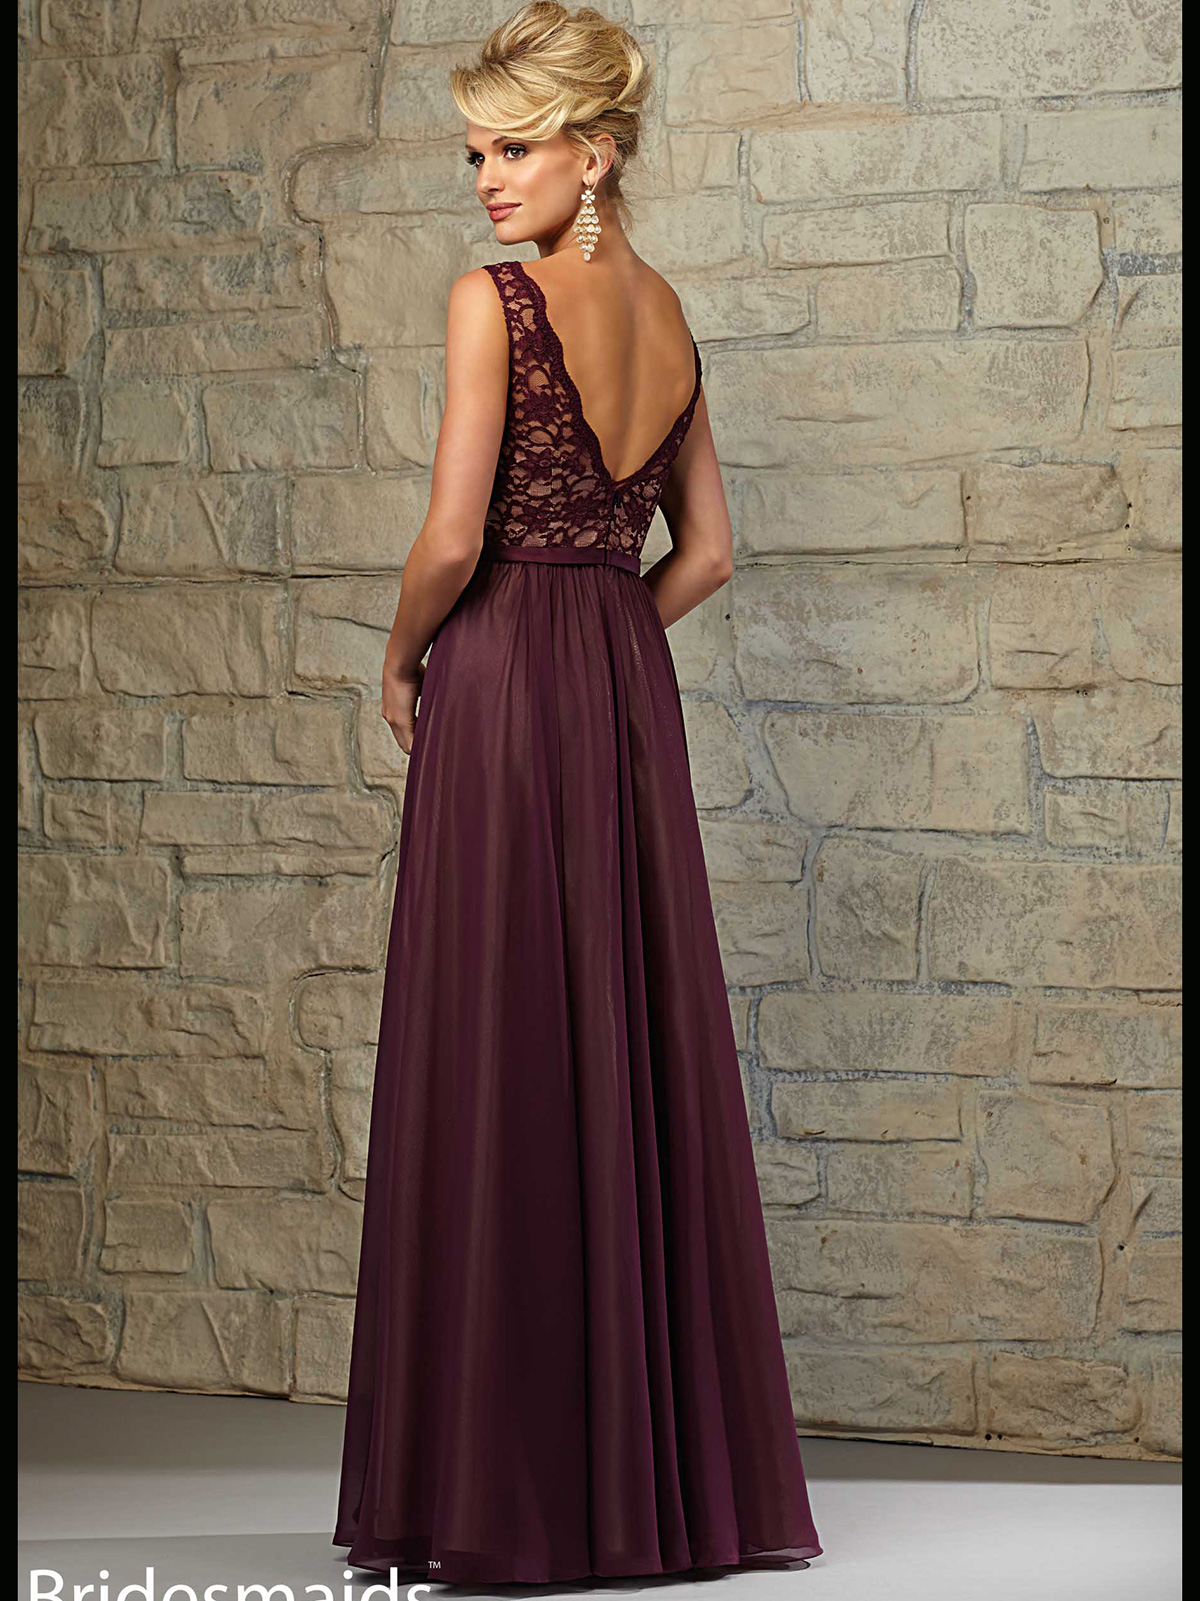 Mori lee bridesmaid dress 714 dimitradesigns mori lee bridesmaid dress 714 ombrellifo Images